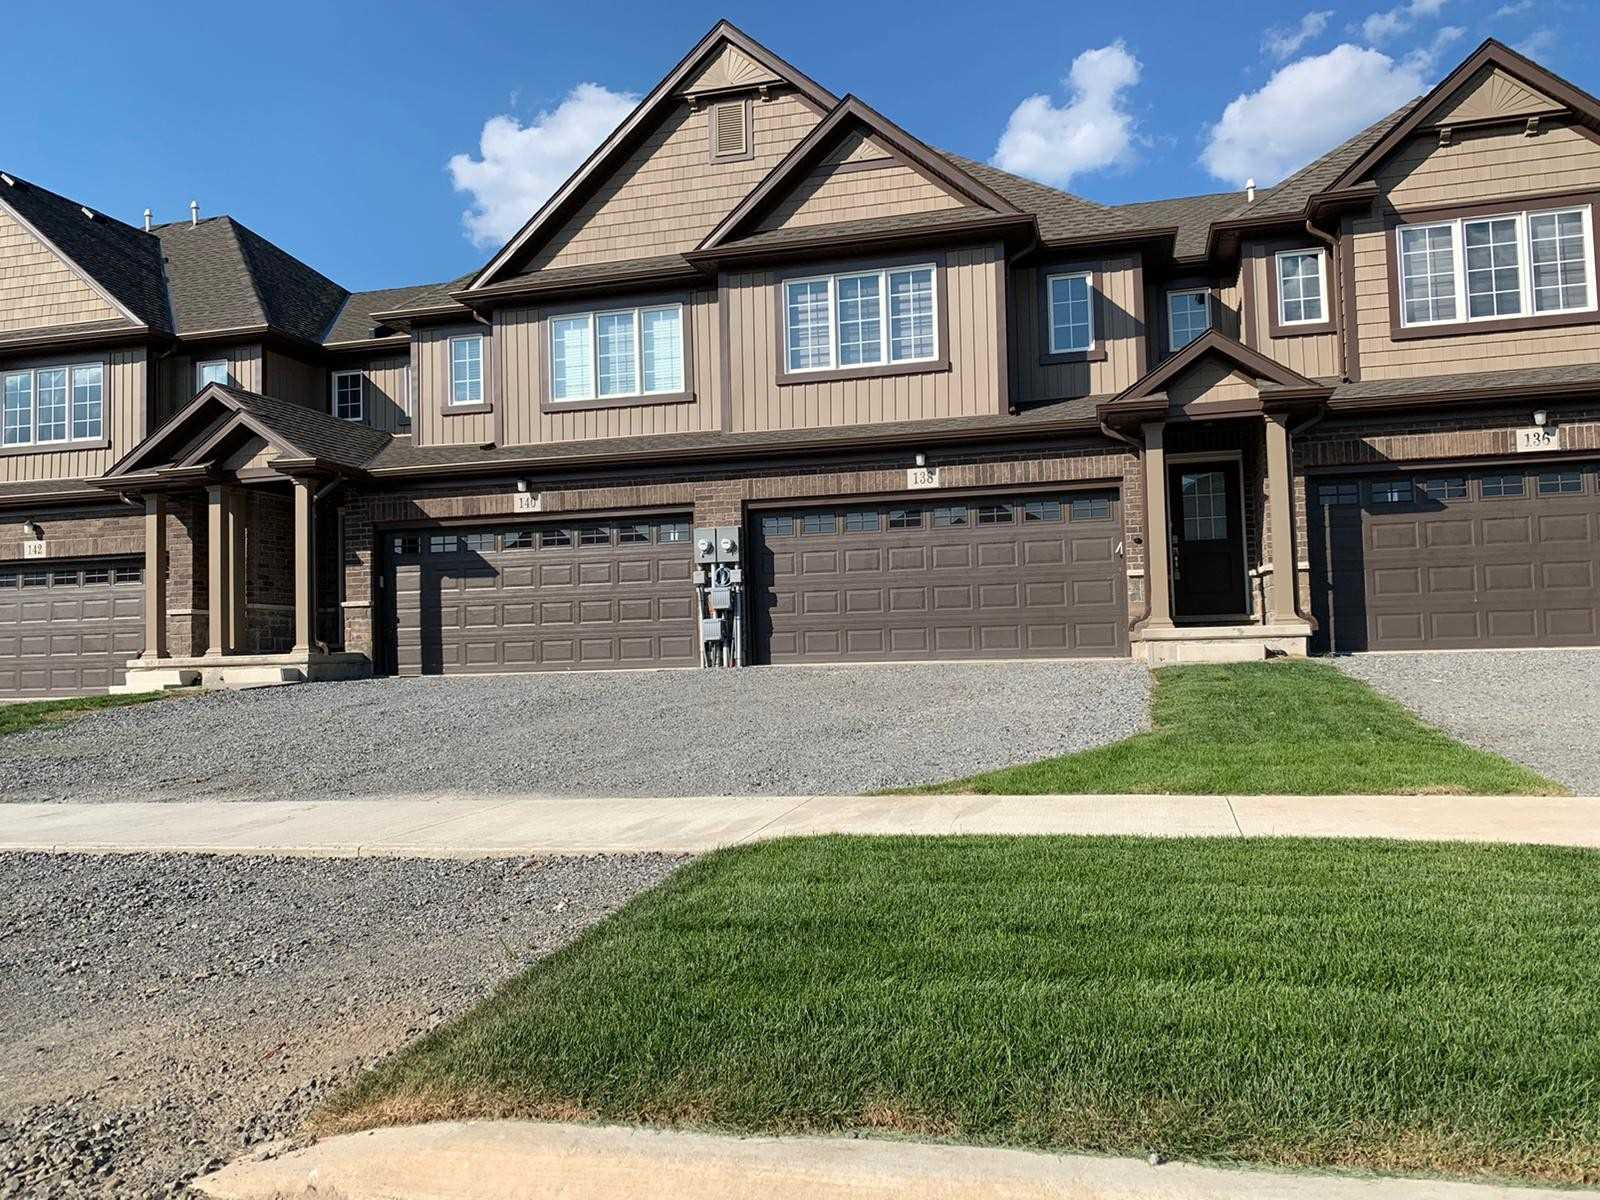 138 Juneberry Rd, Thorold, Ontario L2V-0H8, 4 Bedrooms Bedrooms, ,5 BathroomsBathrooms,Att/row/twnhouse,For Sale,Juneberry,X5176473